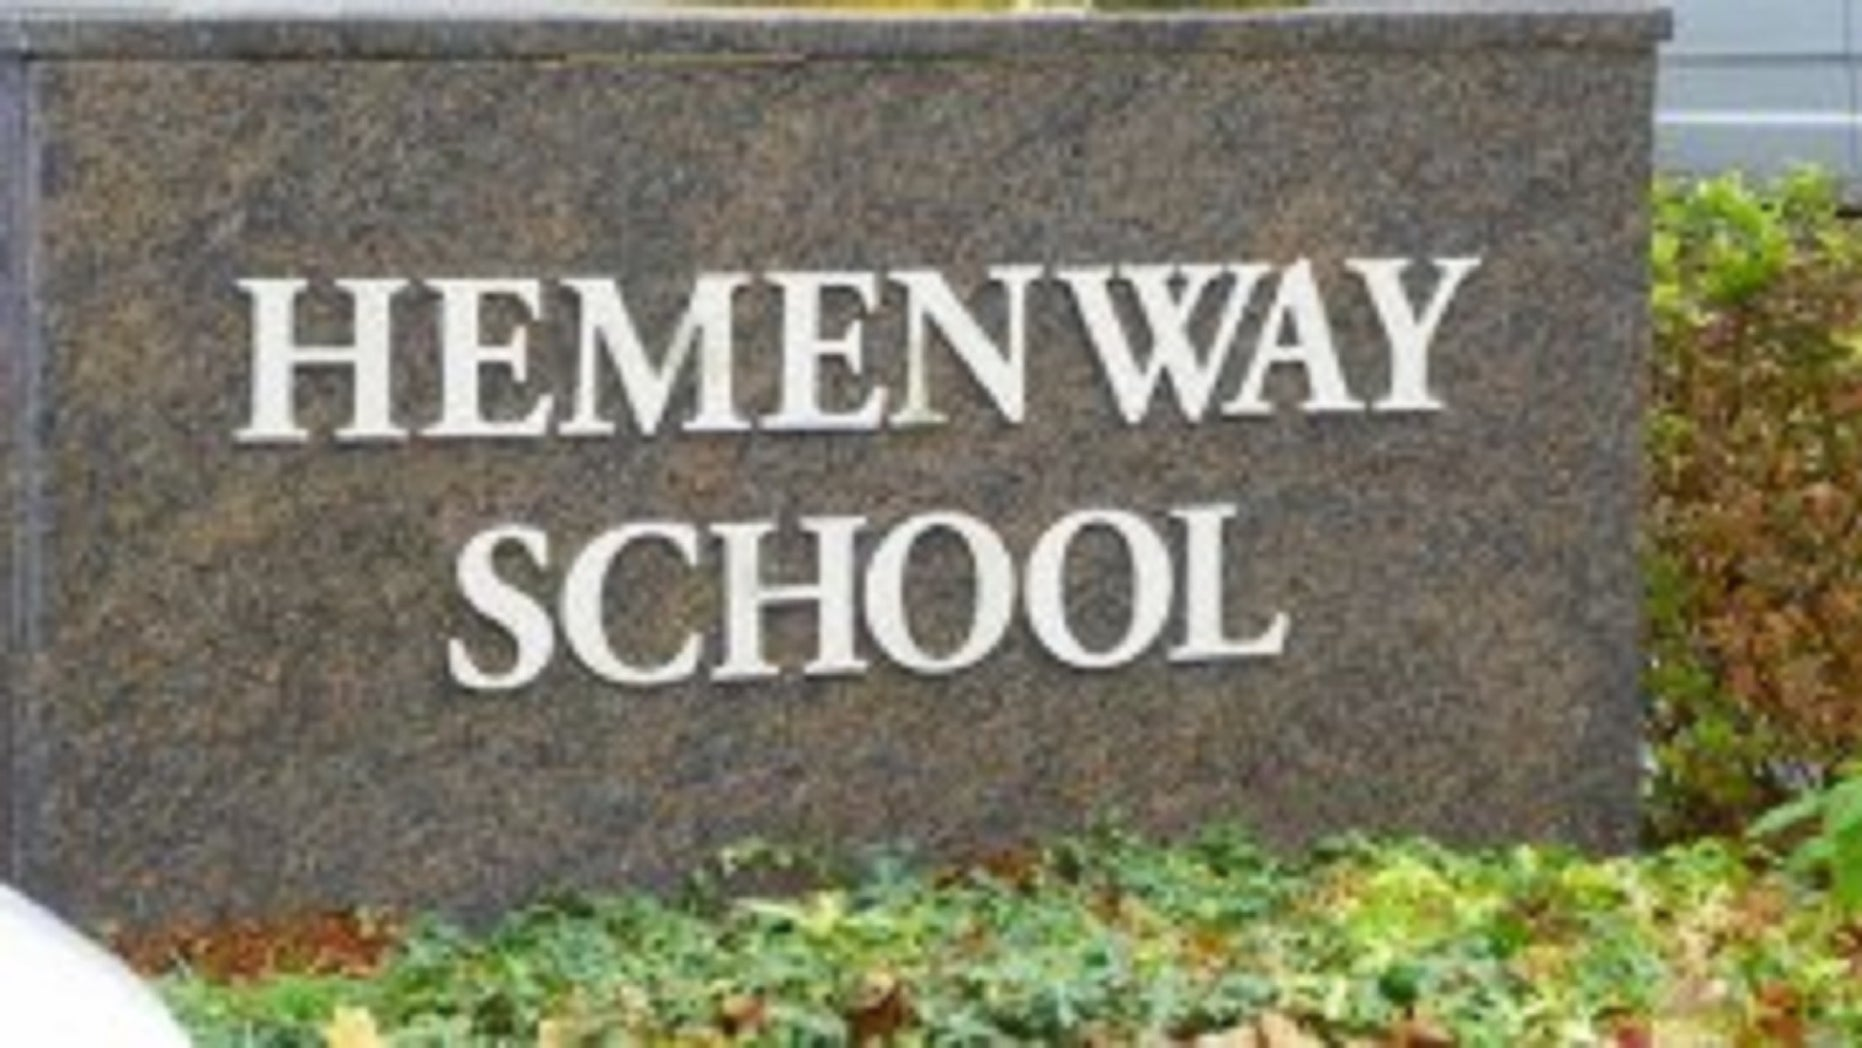 """A Muslim elementary school student in Massachusetts received two handwritten notes that said """"You're a terrorist"""" and """"I will kill you,"""" reports said."""